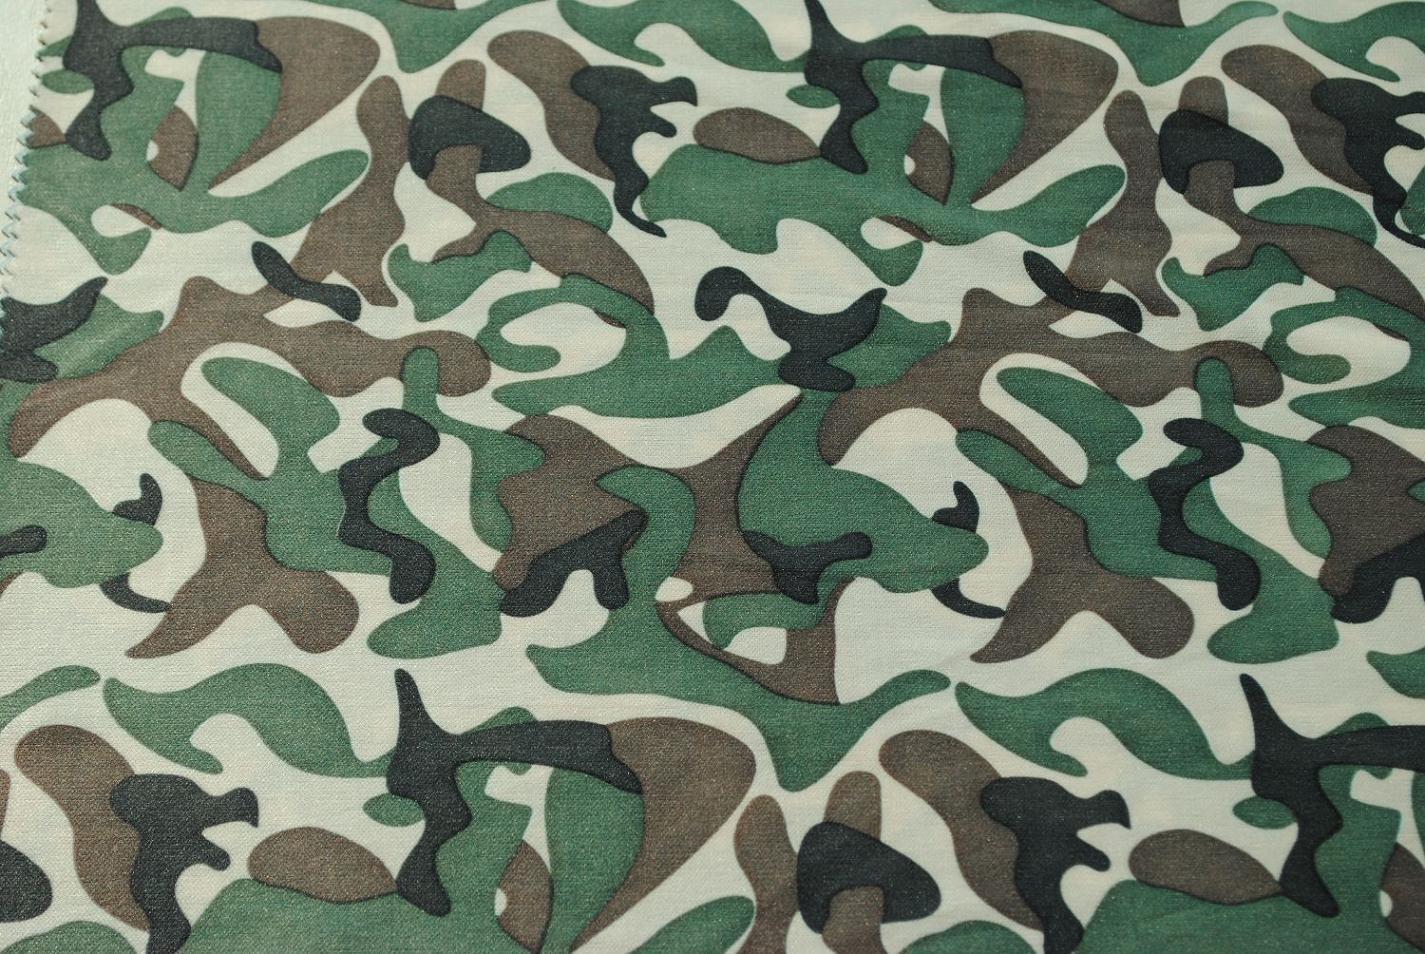 Army Camouflage Patterns – Catalog of Patterns